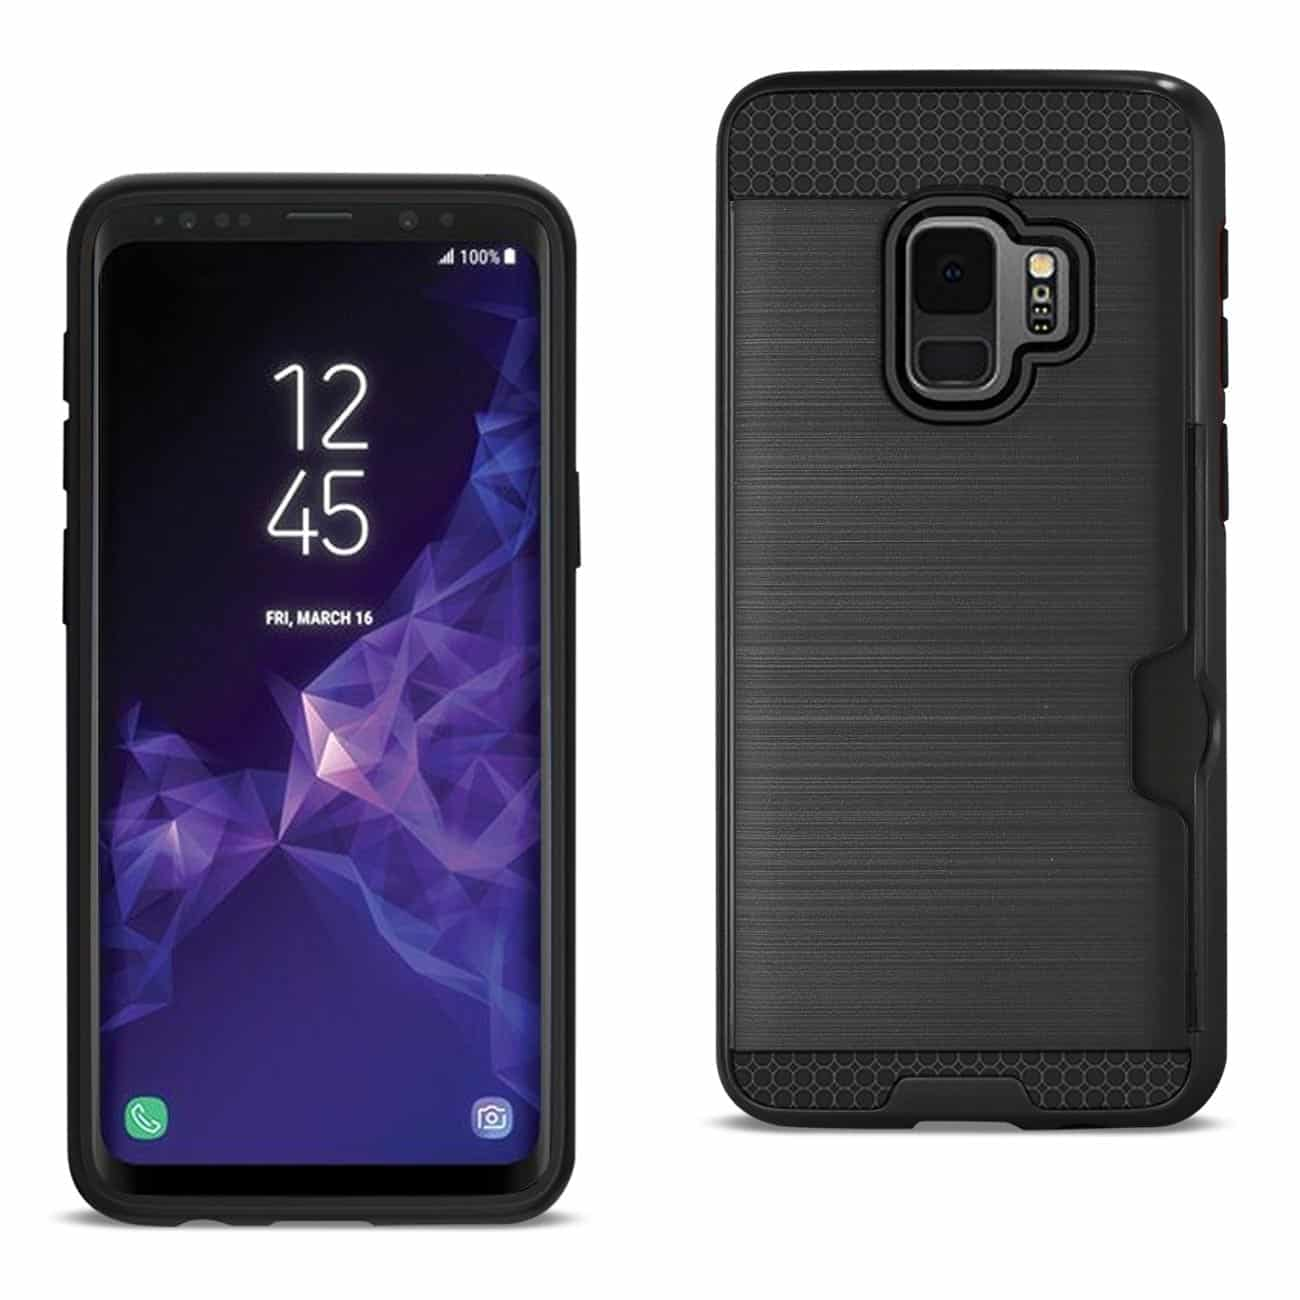 Samsung Galaxy S9 Slim Armor Hybrid Case With Card Holder In Black